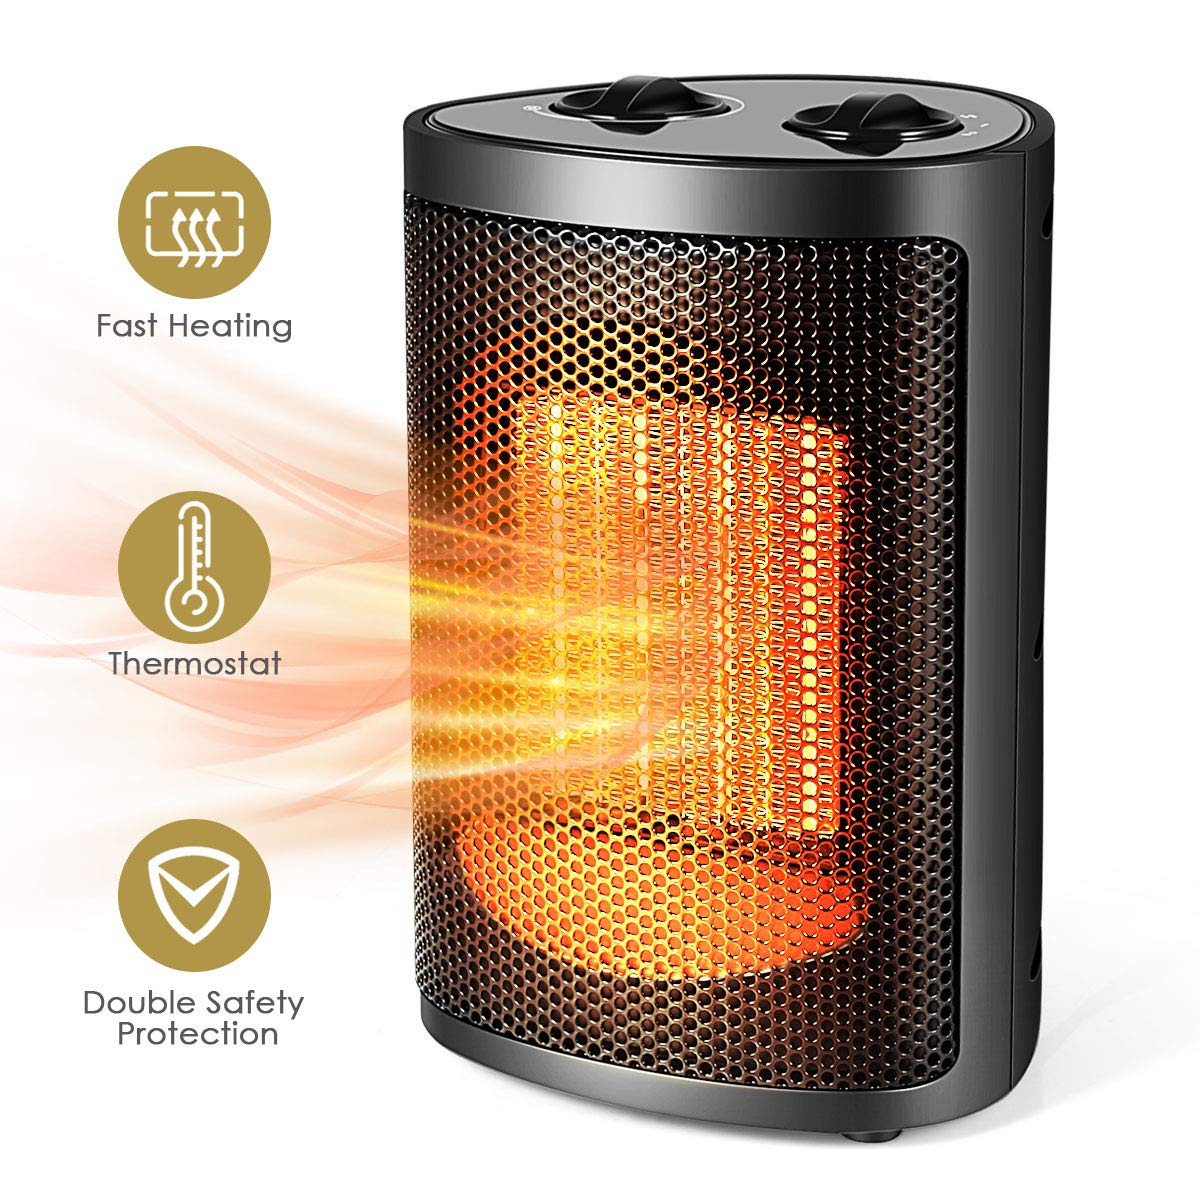 Space Heater, Electric Ceramic Space Heater with Adjustable Thermostat, 750-1500W Duoble Safety Protection Desk Heater for Home Office, Portable Heaters